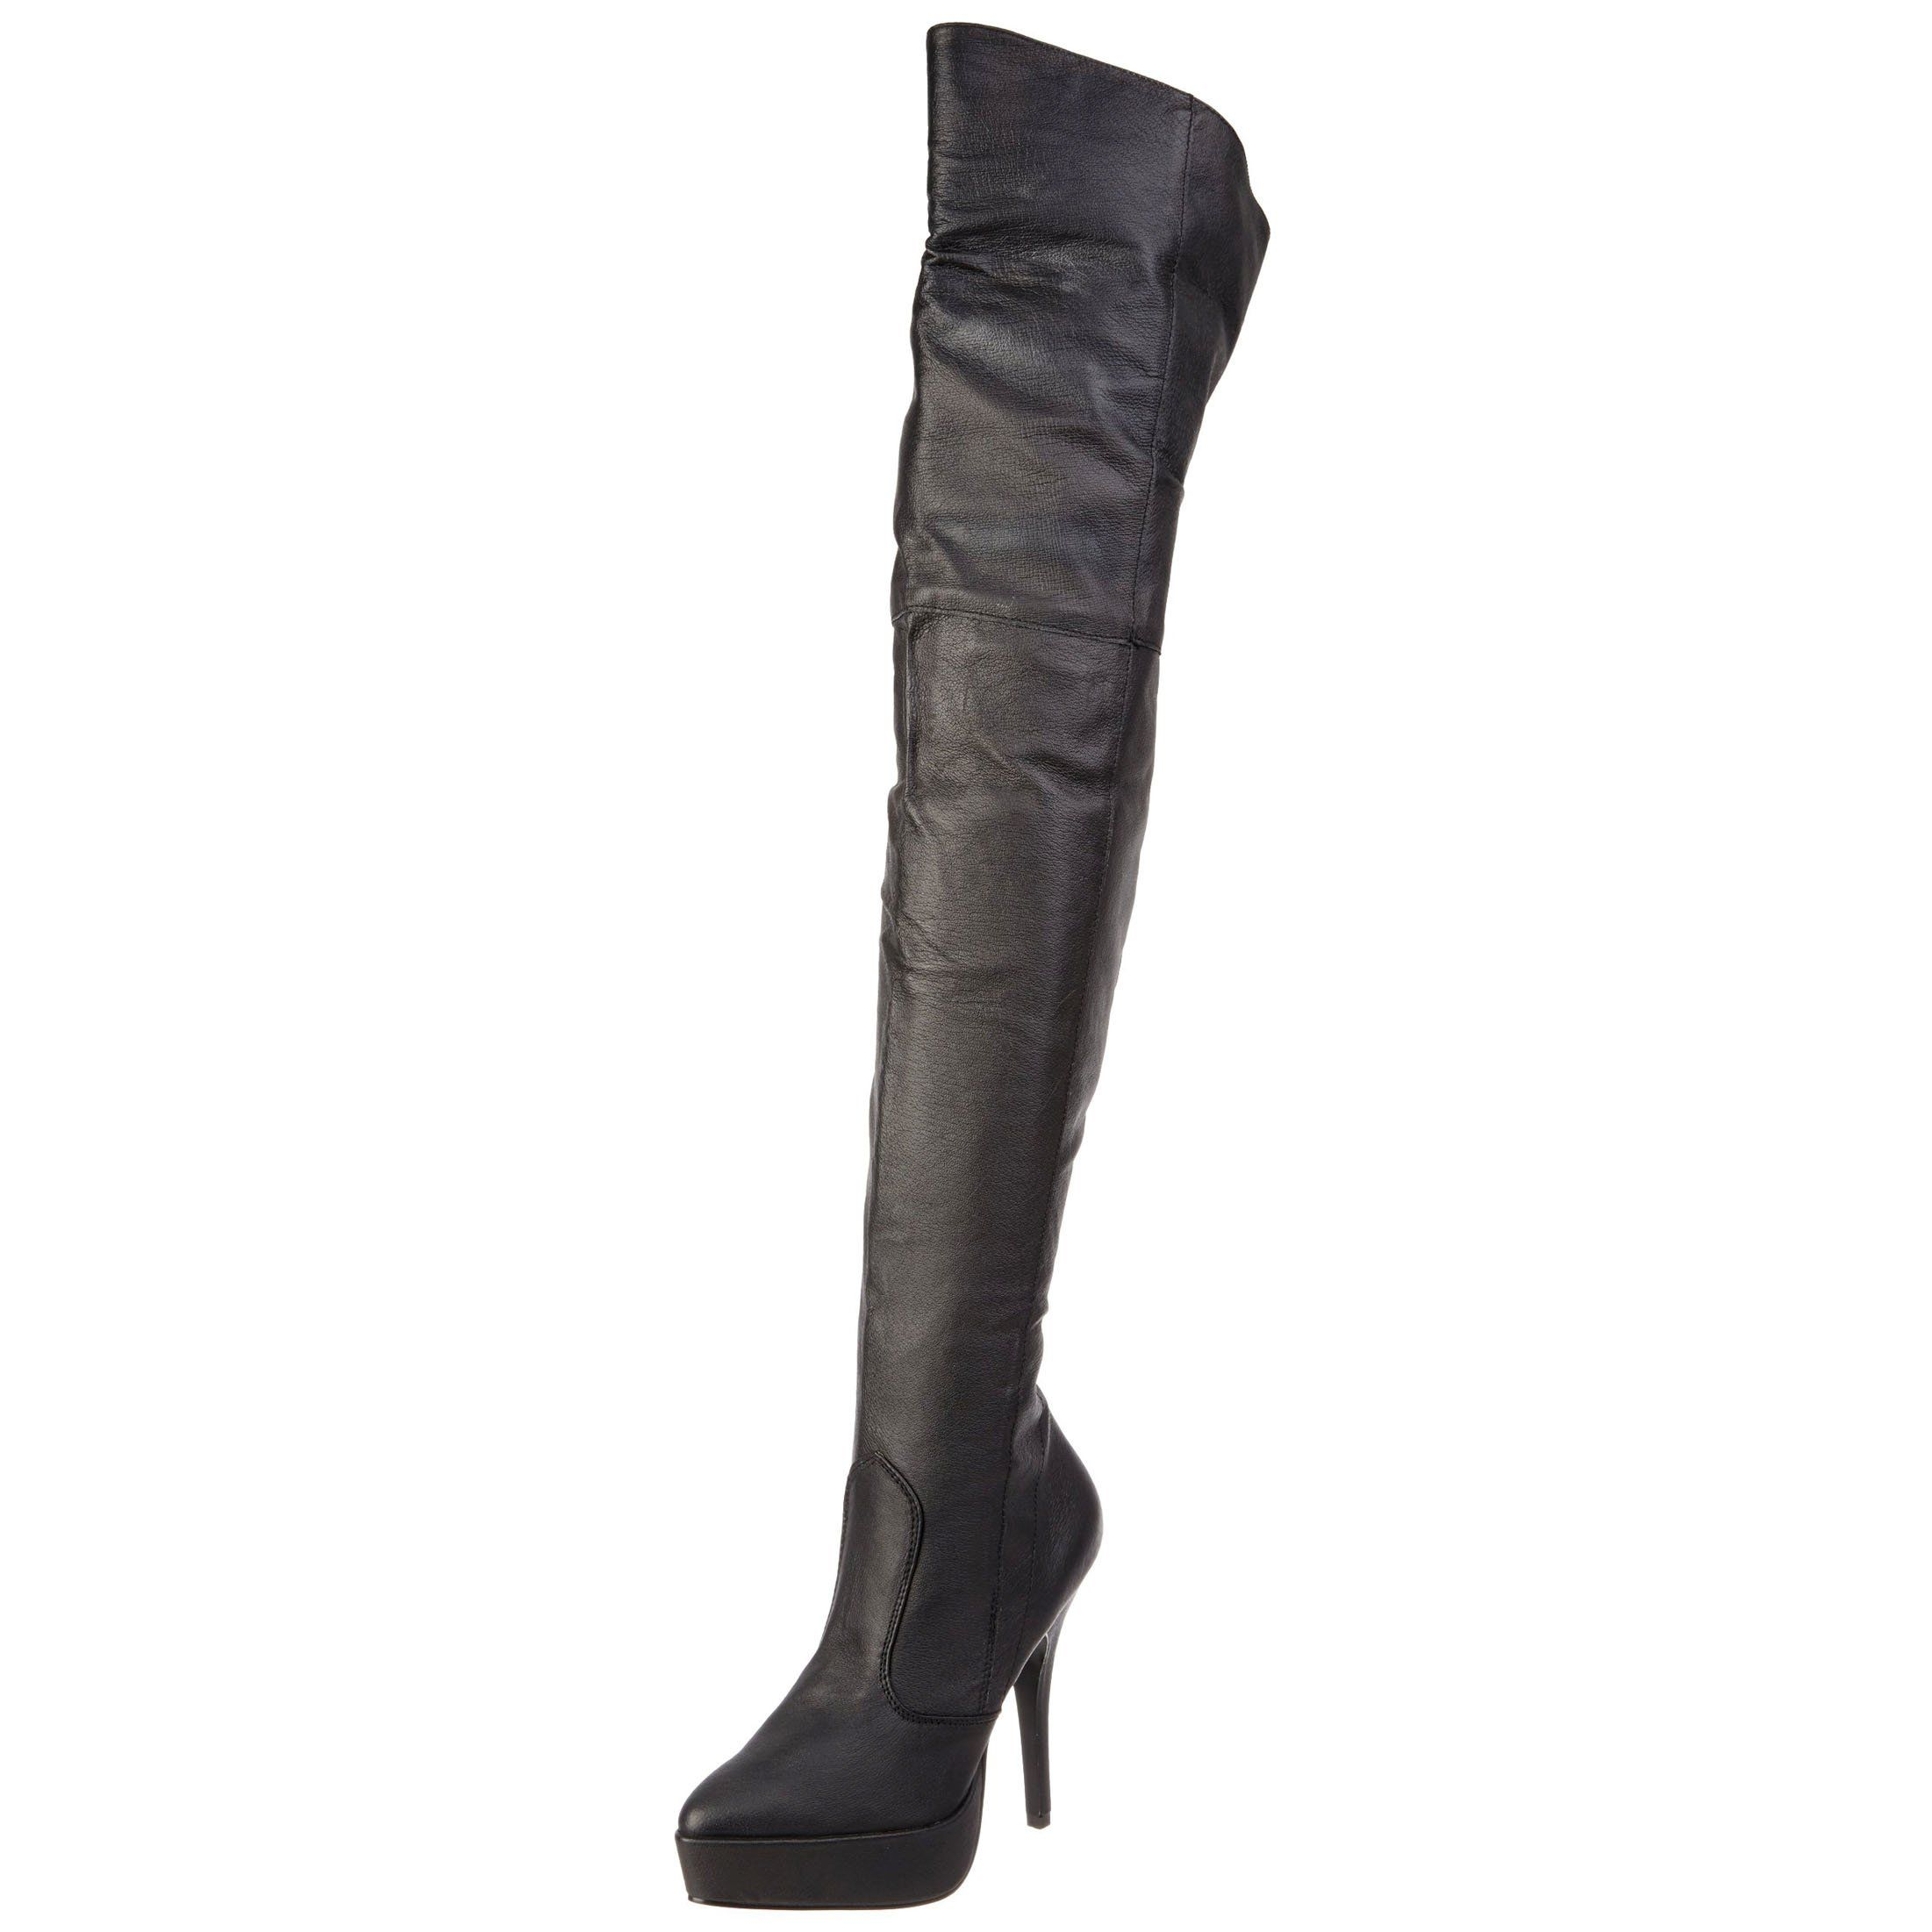 8eb61fb113f3 Womens Black Boots 5 Inch Heels Thigh High Boots Mid Platforms Pig Leather  Size  11